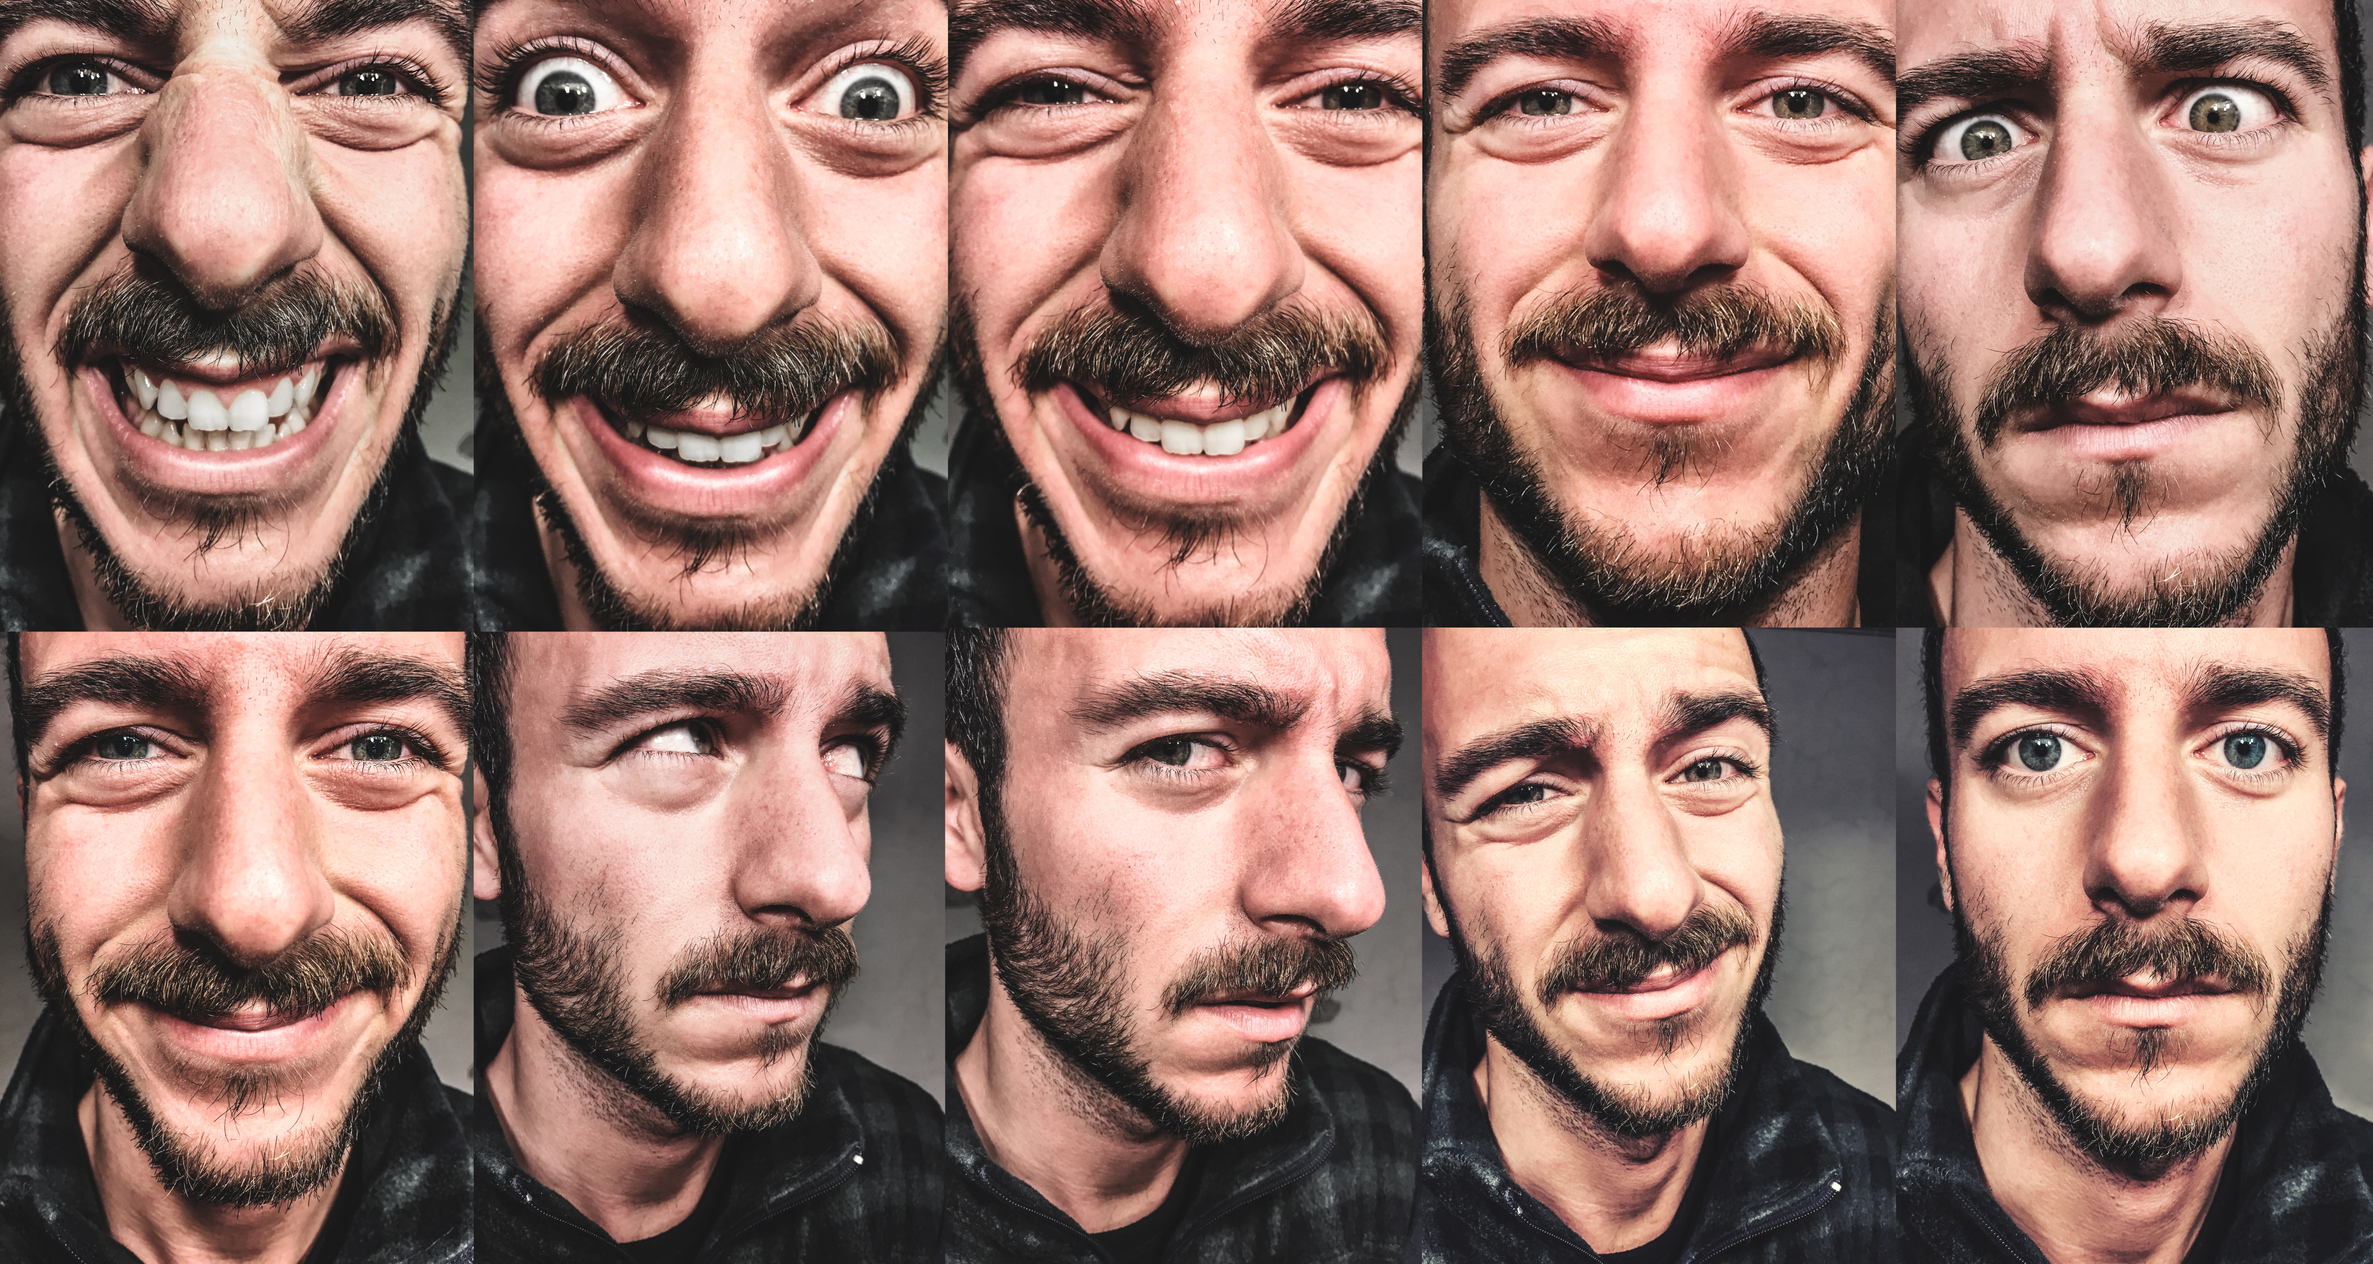 Multiple expressions of a man's face.